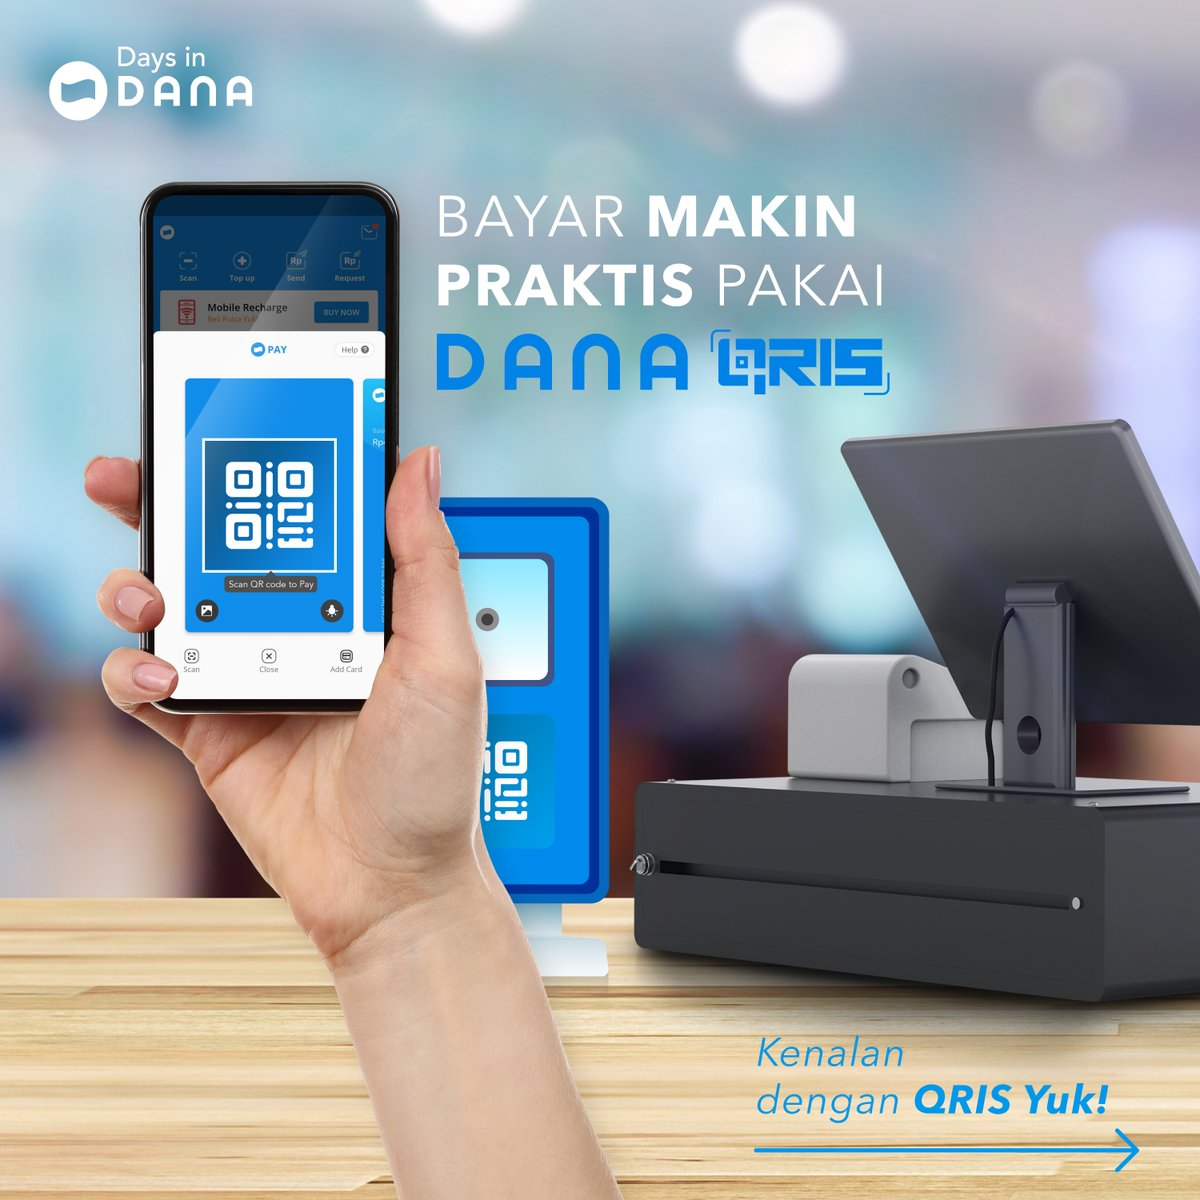 DANA Aiming School Tuition Payment and Retribution